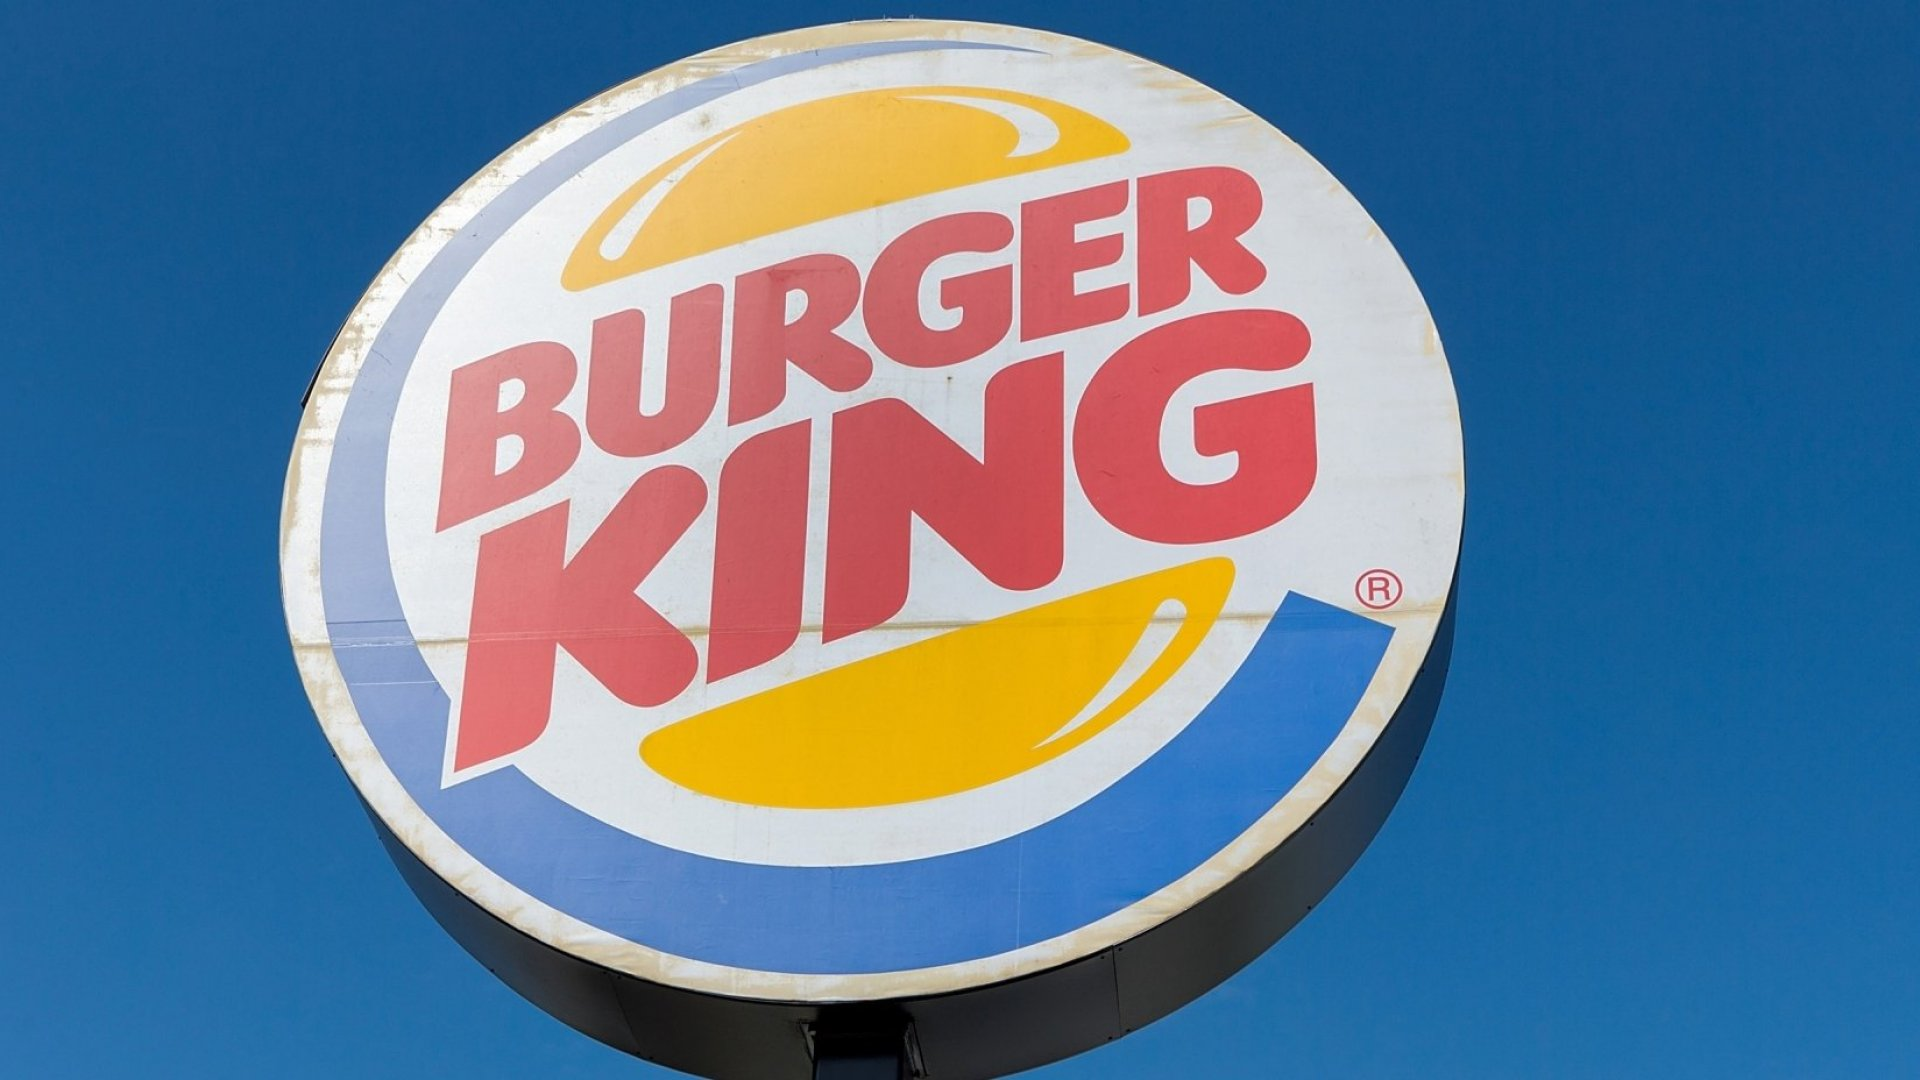 Burger King Just Announced an Amazing Promotion: the 1-Cent Whopper (There's a Catch, But It's Hilarious)